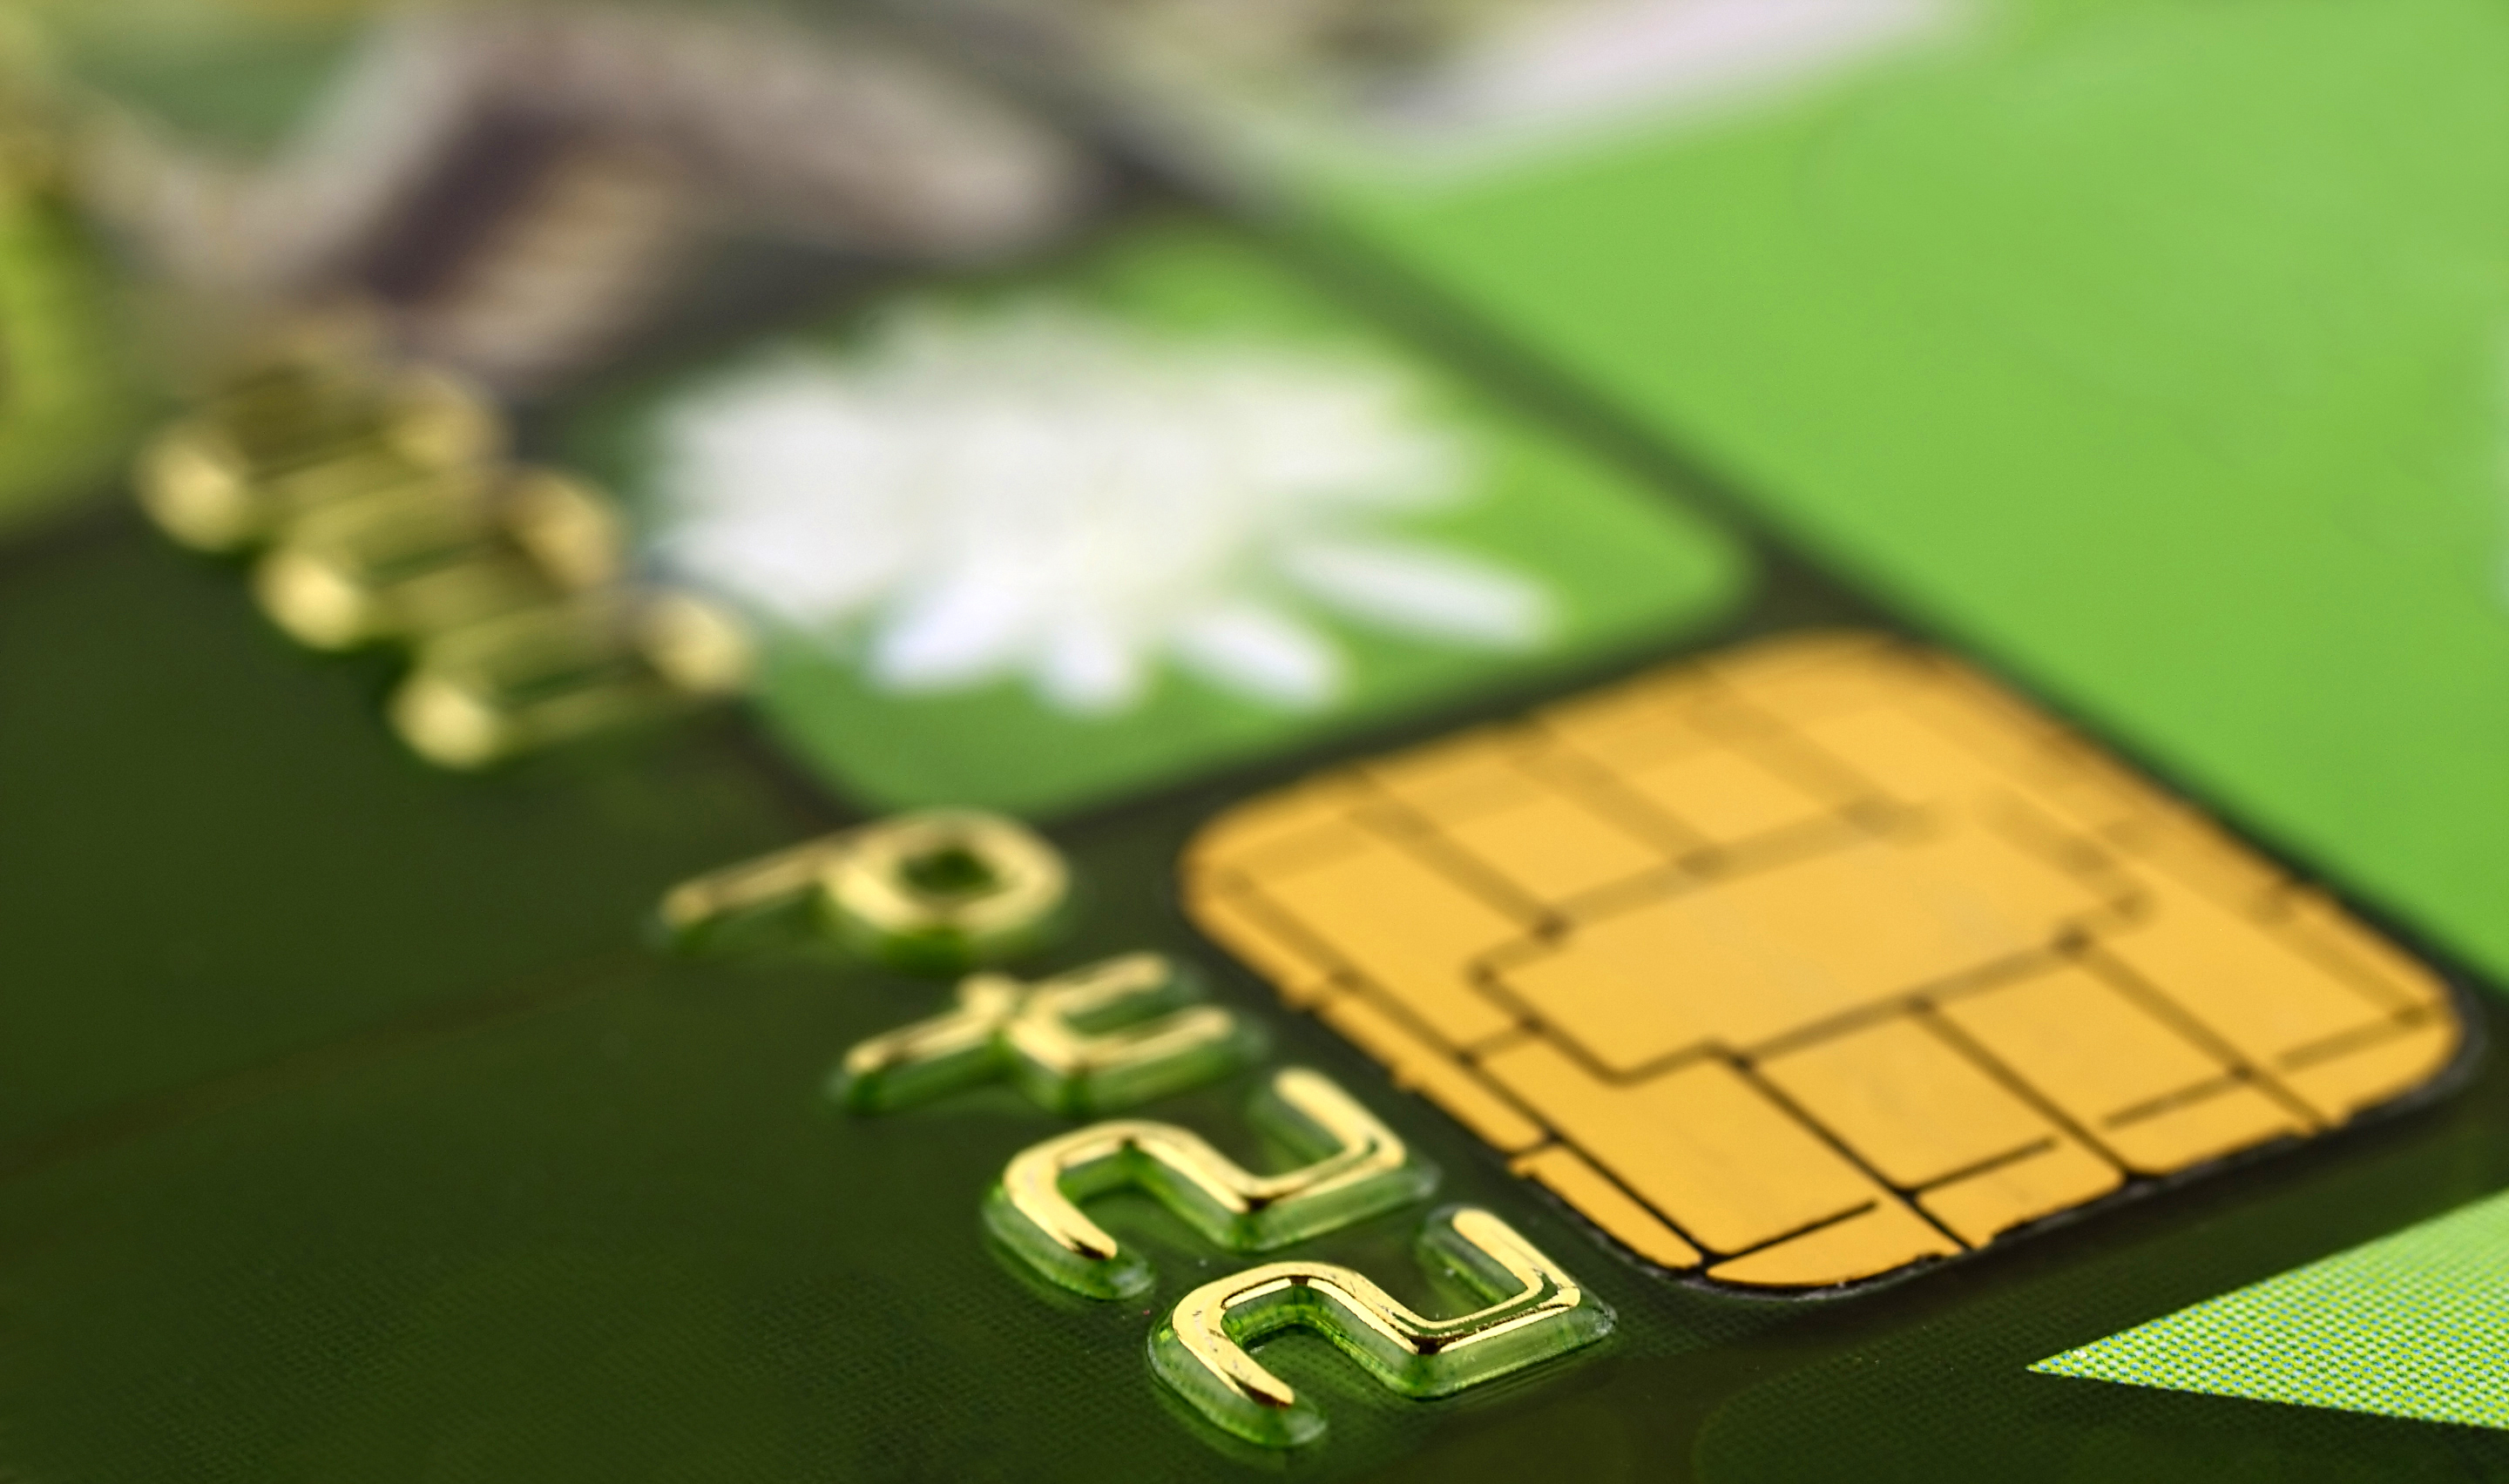 Bankcard_chip_close-up_iStock_000009764672Medium